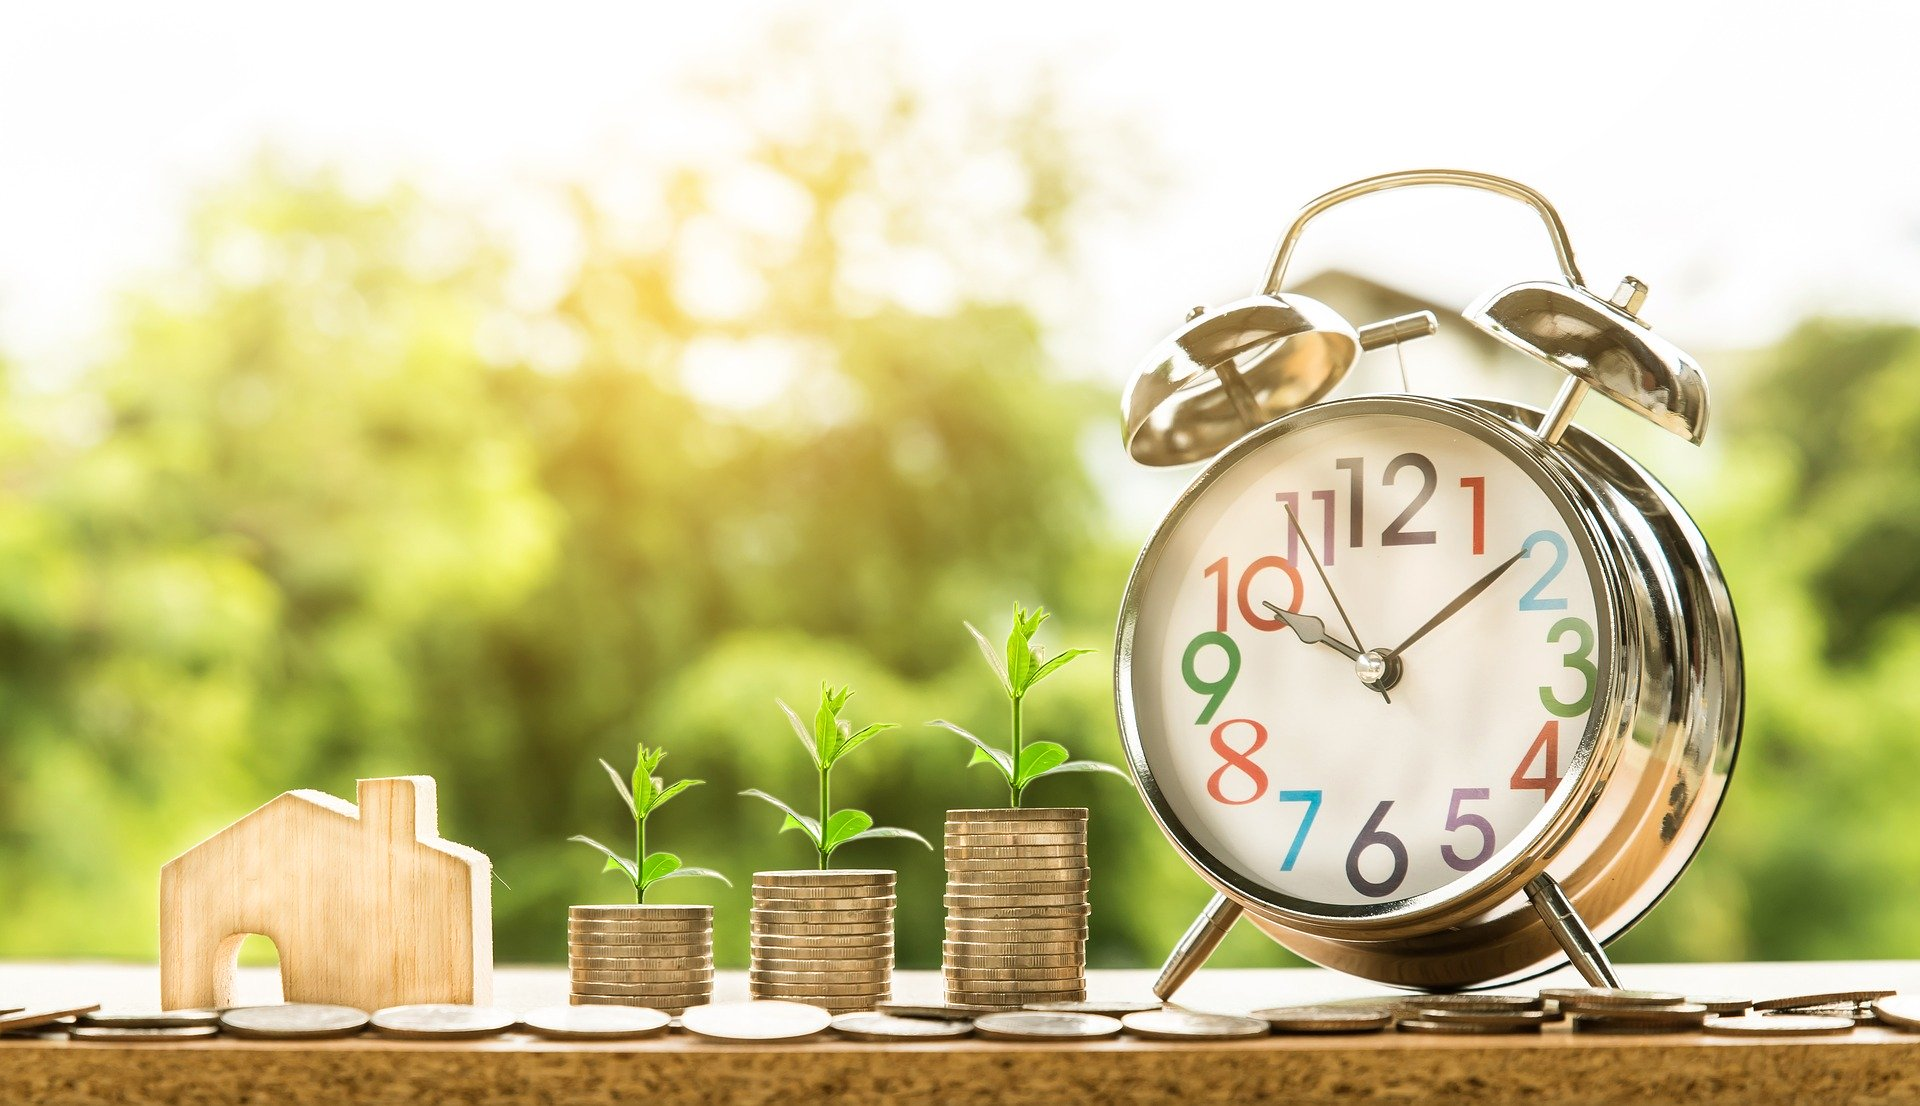 Investment Potential of Real Estate